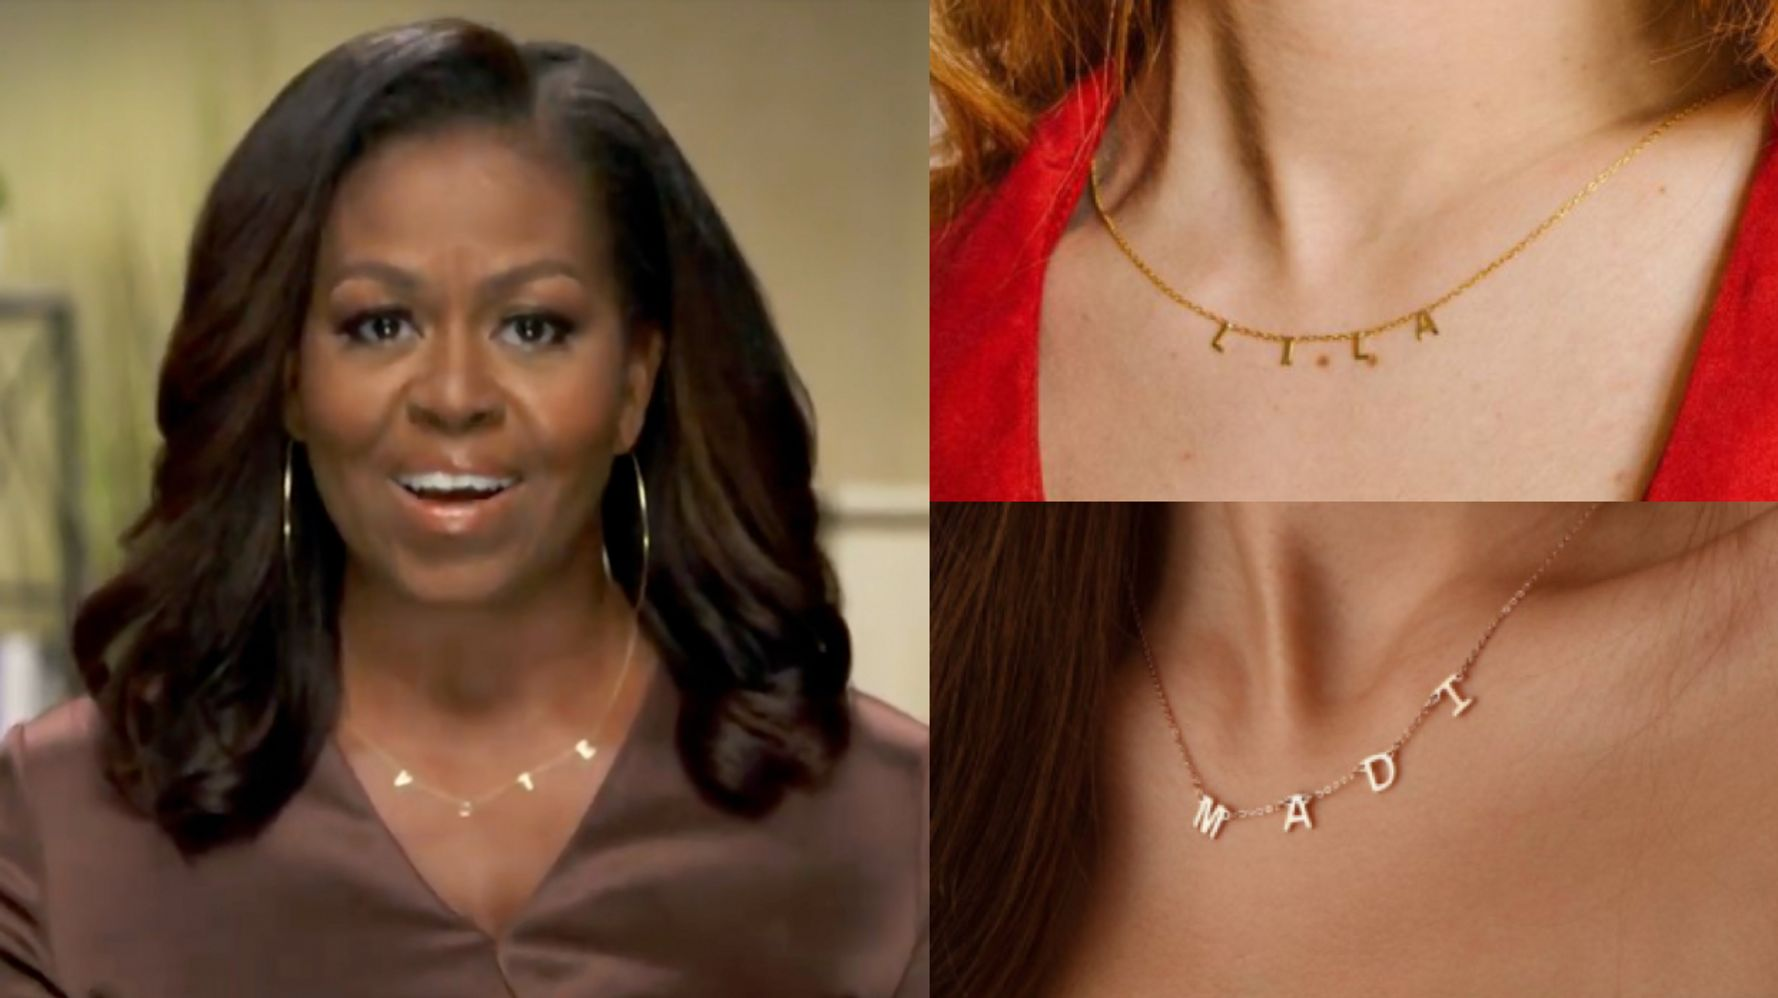 """Here Are Affordable Lookalikes To Michelle Obama's """"VOTE"""" Necklace 1"""